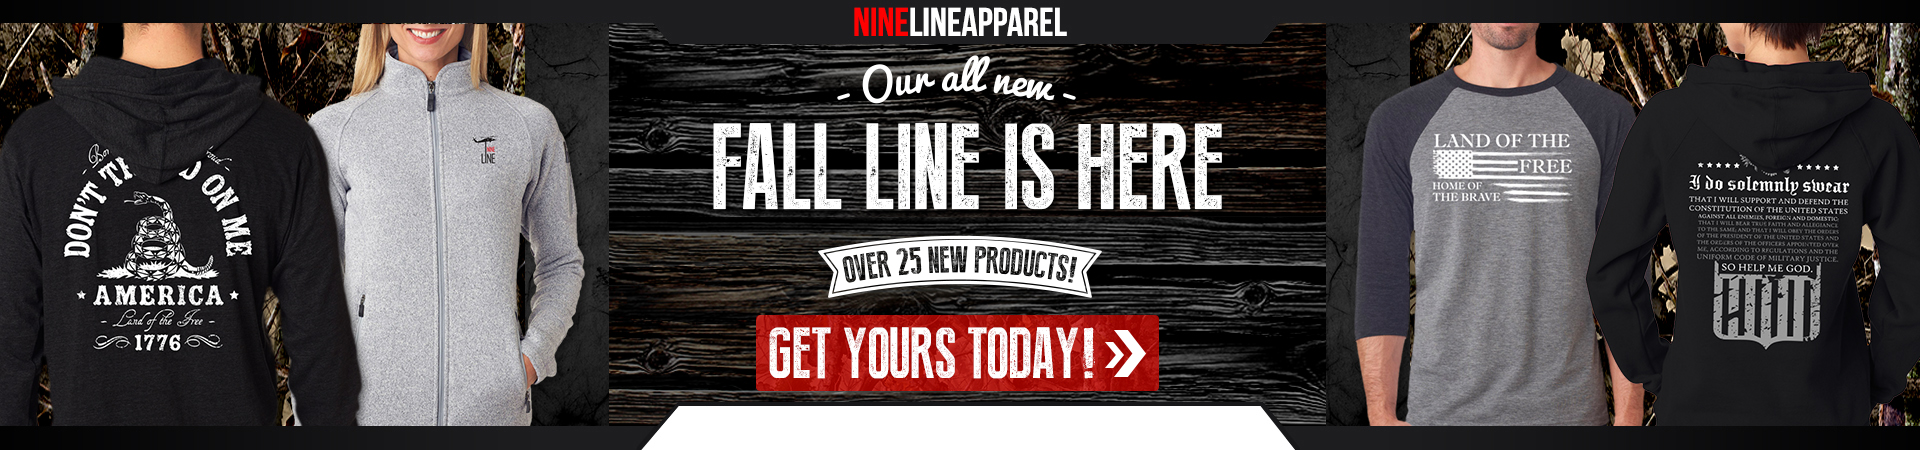 Fall Line is Here